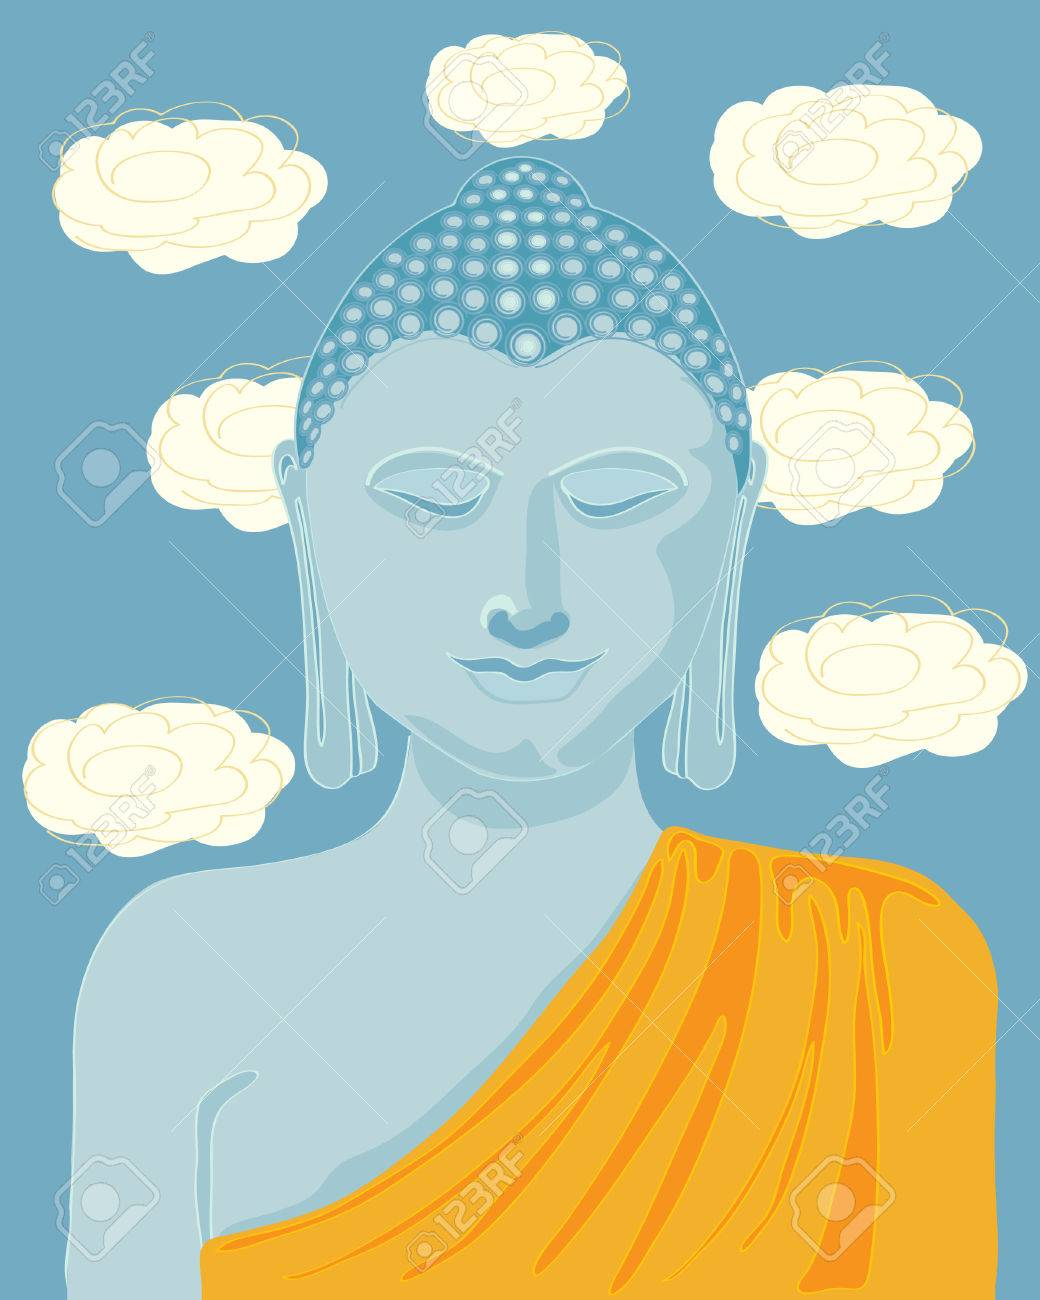 a hand drawn illustration of buddha with orange robes and lotus flowers in the background Stock Vector - 7542677